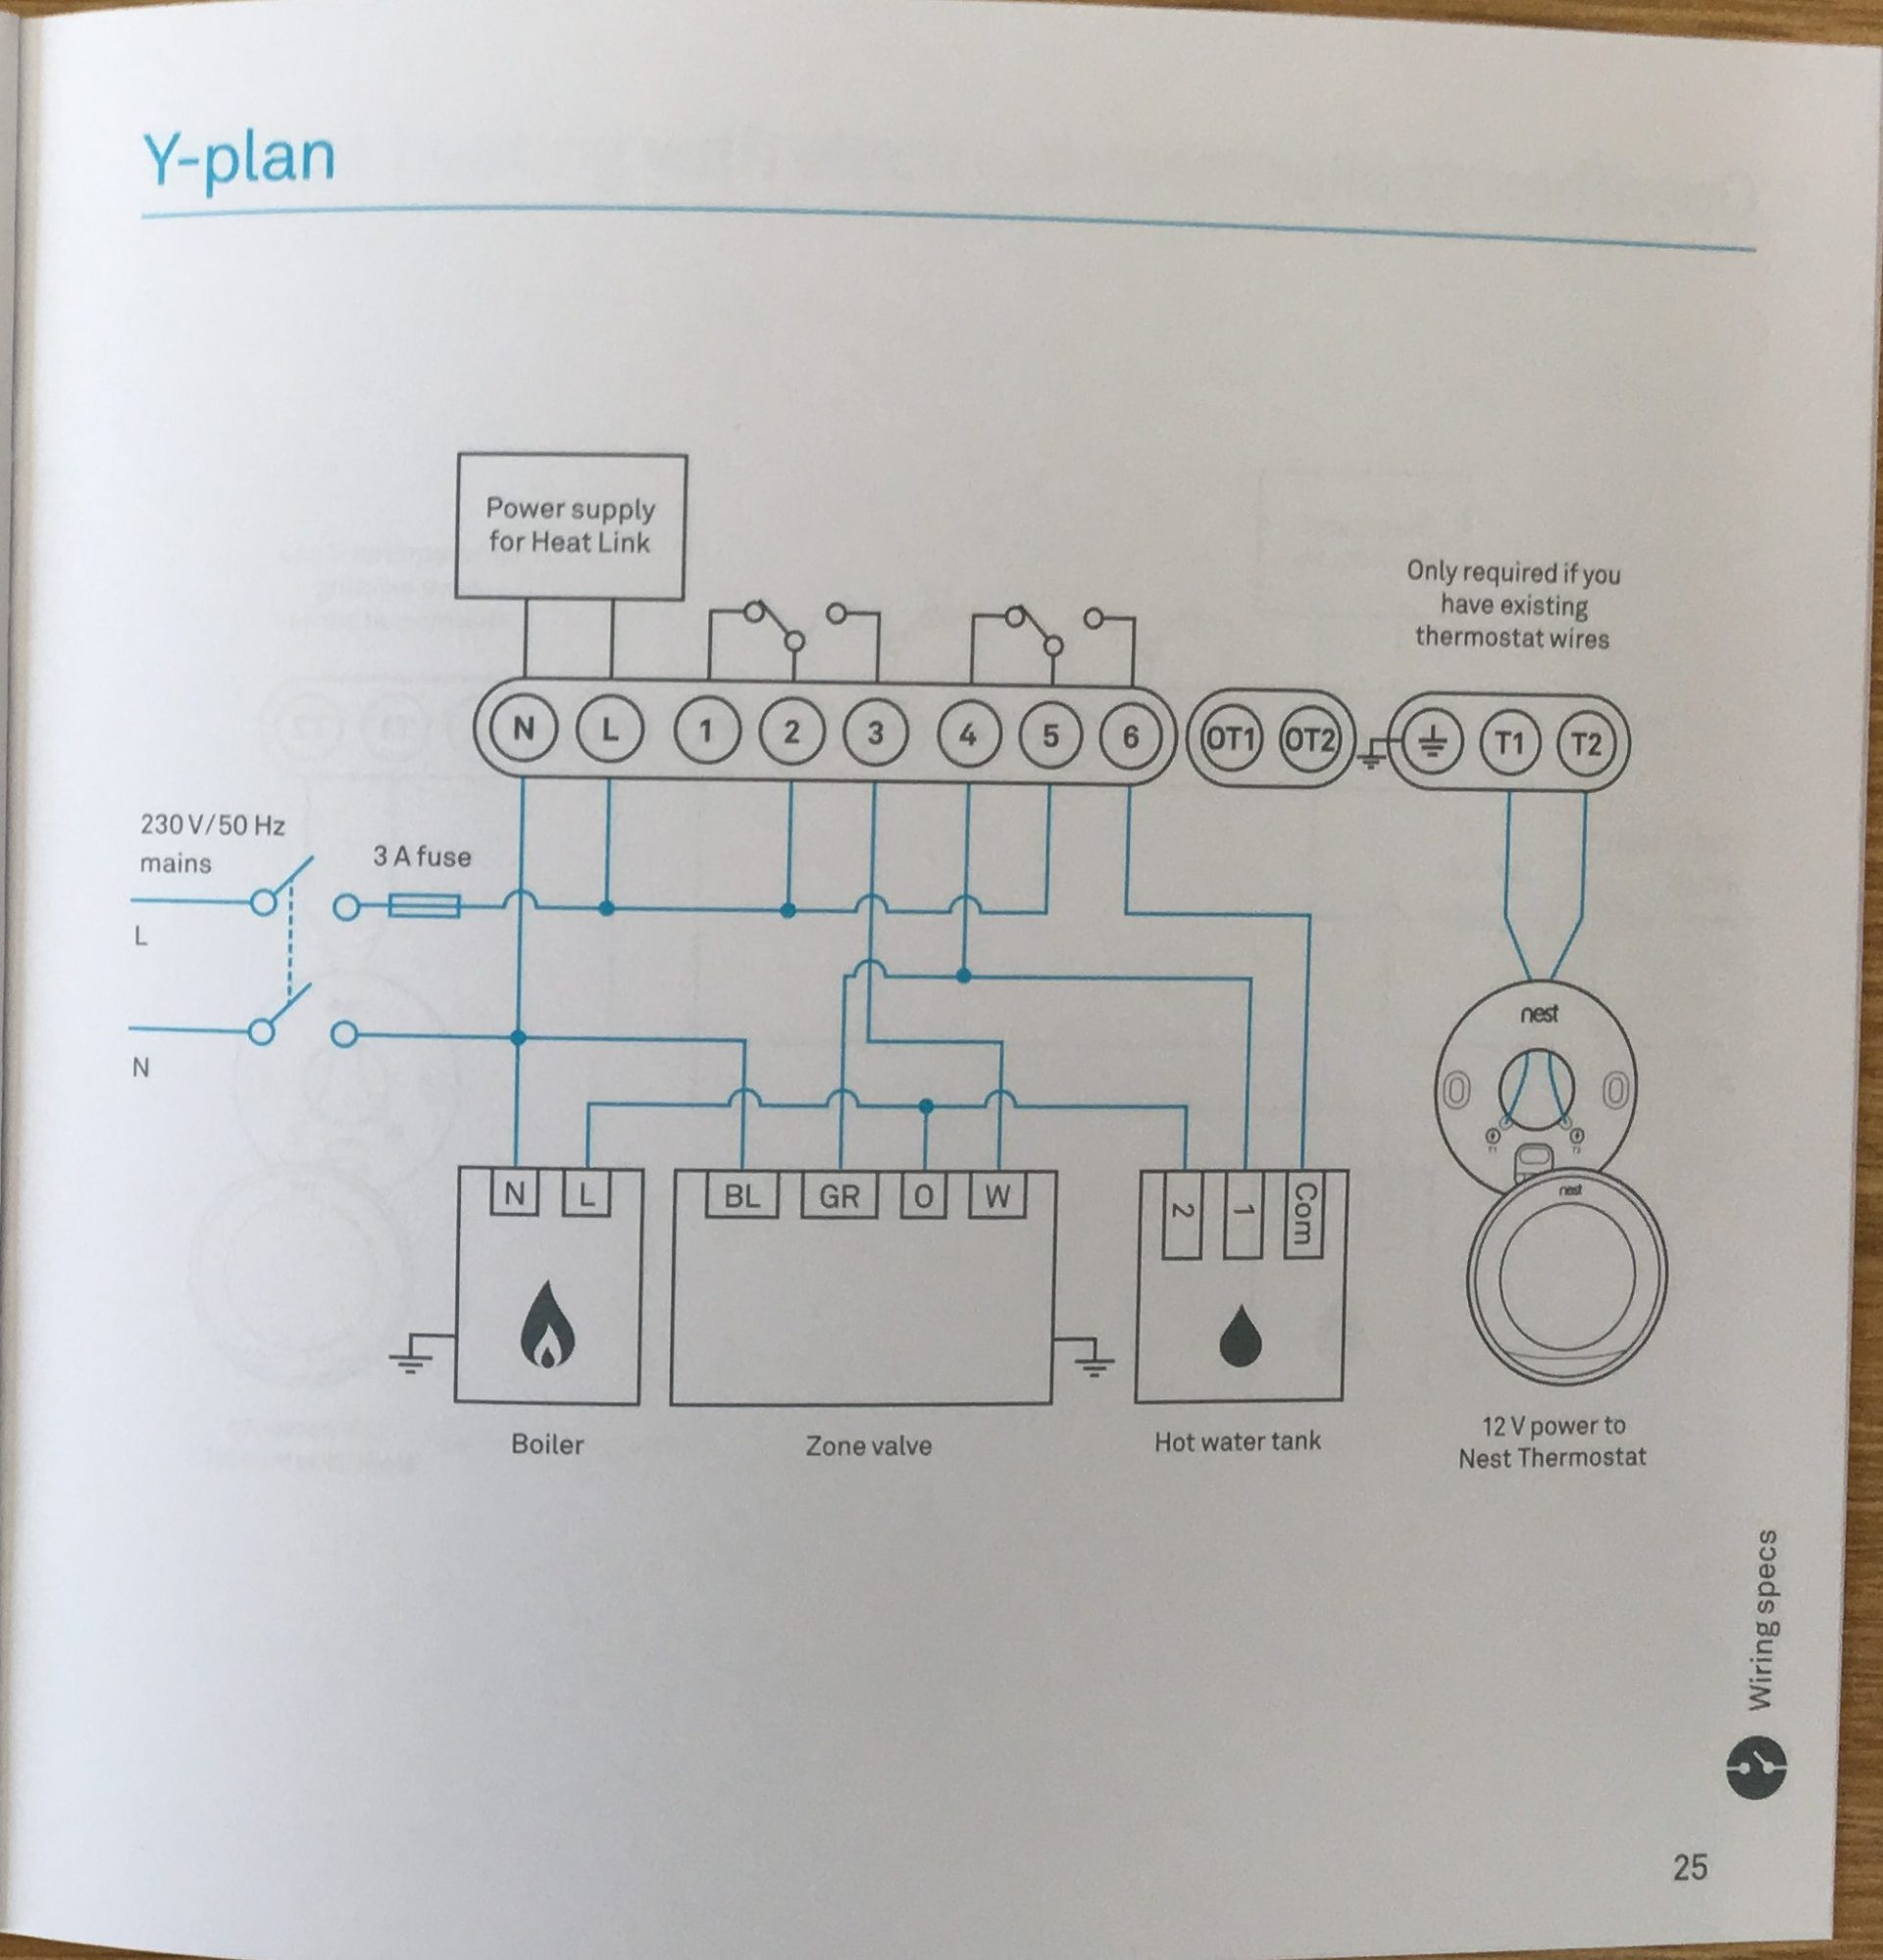 How To Install The Nest Learning Thermostat (3Rd Gen) In A Y-Plan - Nest Pro Thermostat Wiring Diagram